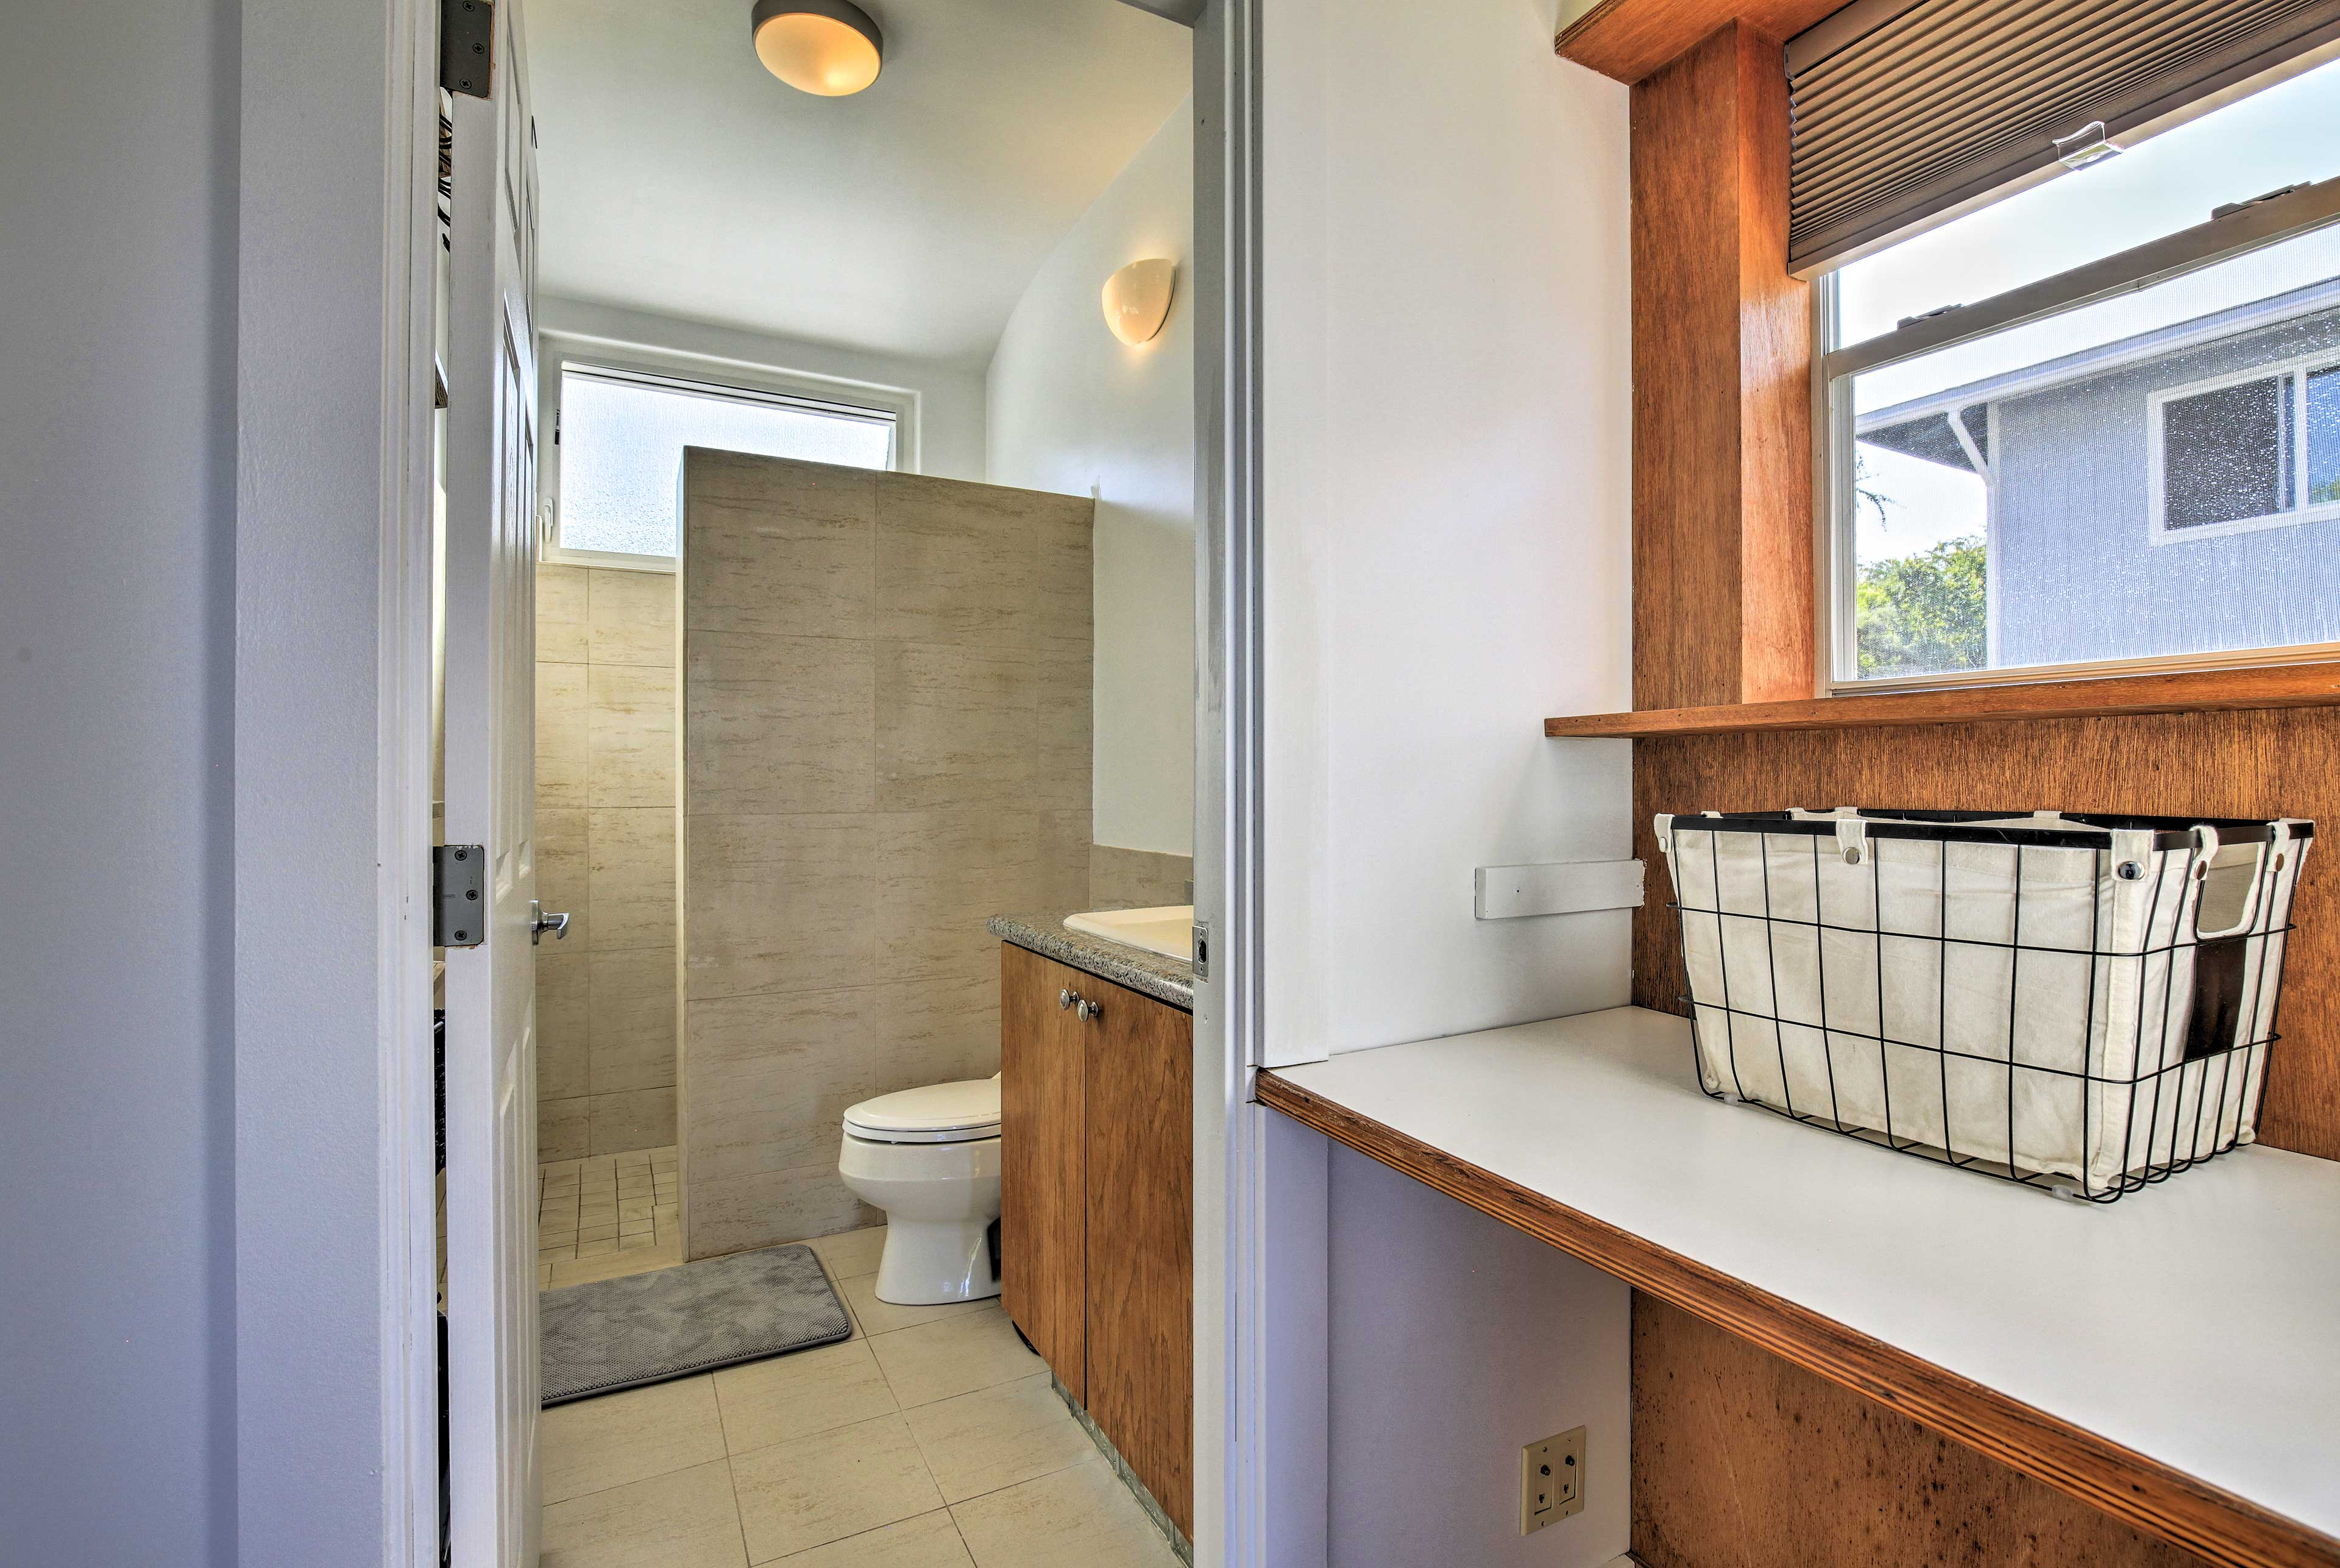 This cottage features 1 full bathroom.